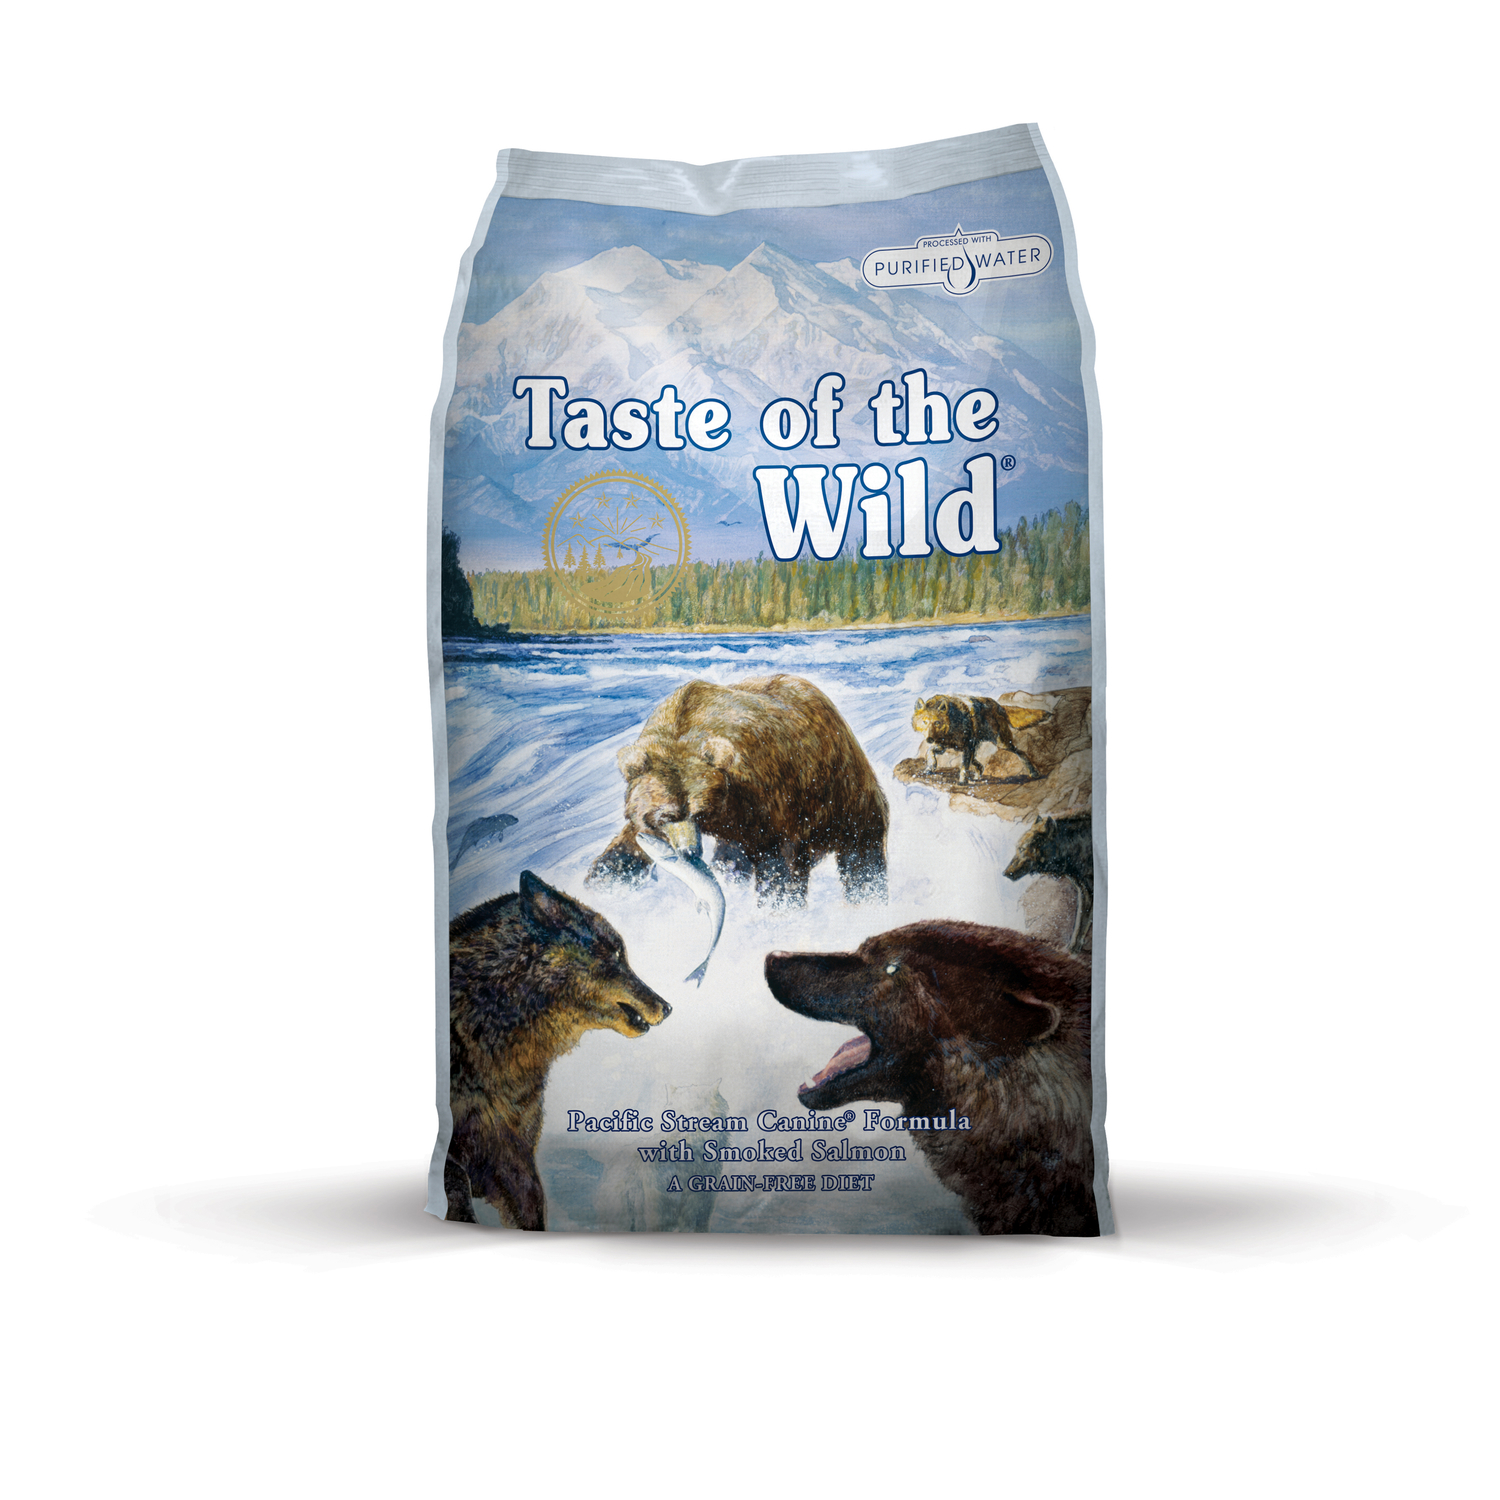 Taste of the Wild  Pacific Stream  Salmon  Dog  Food  Grain Free 30